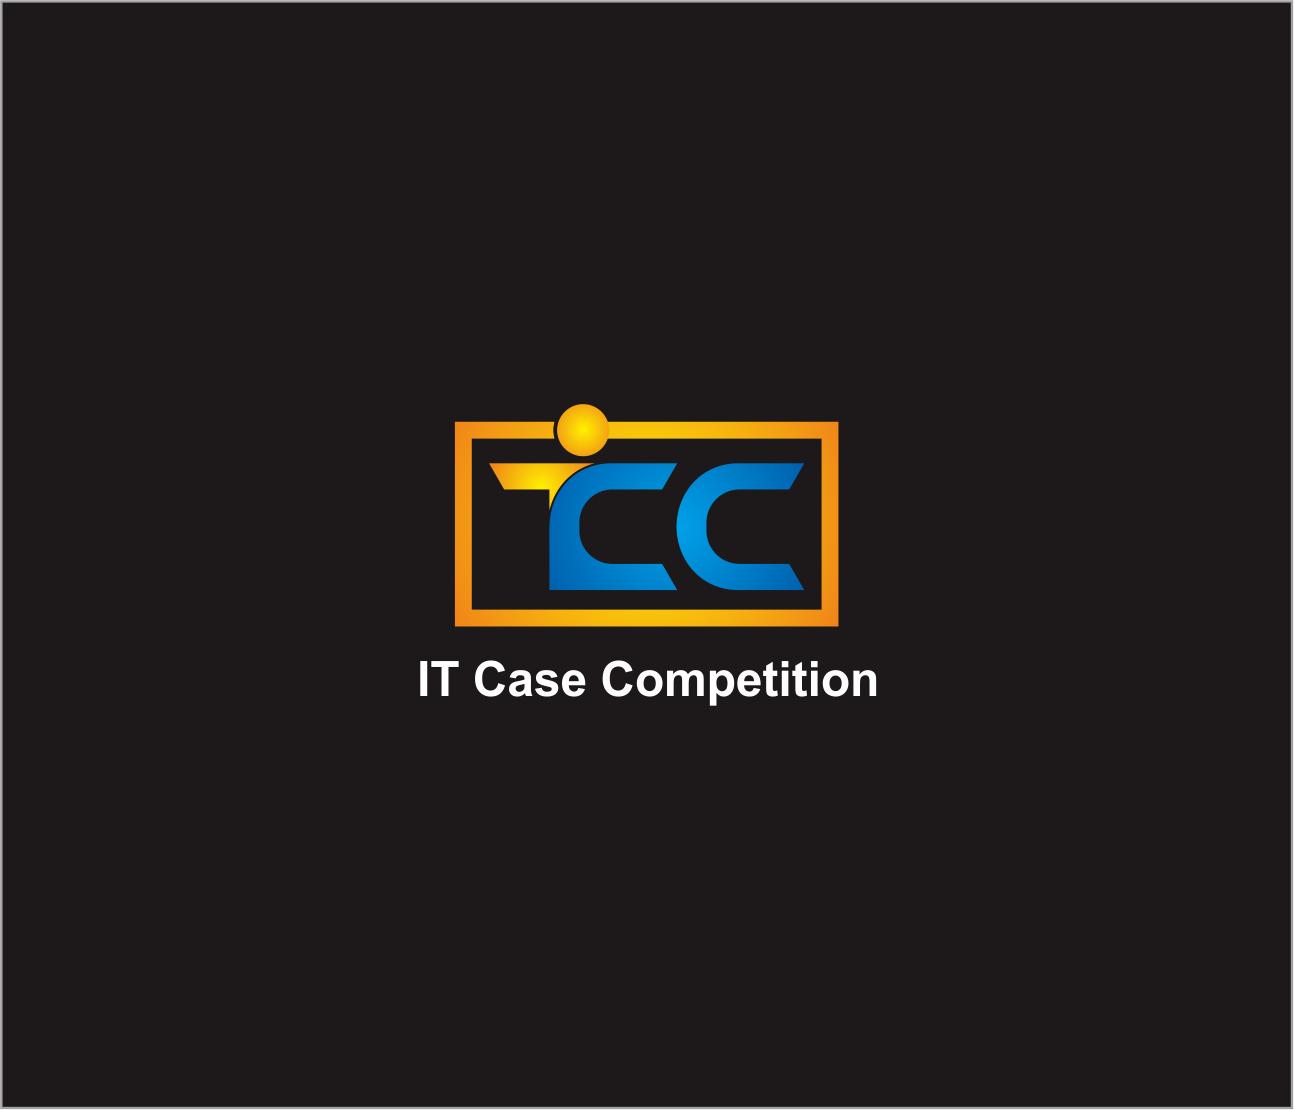 Logo Design by Armada Jamaluddin - Entry No. 114 in the Logo Design Contest Inspiring Logo Design for ITCC.